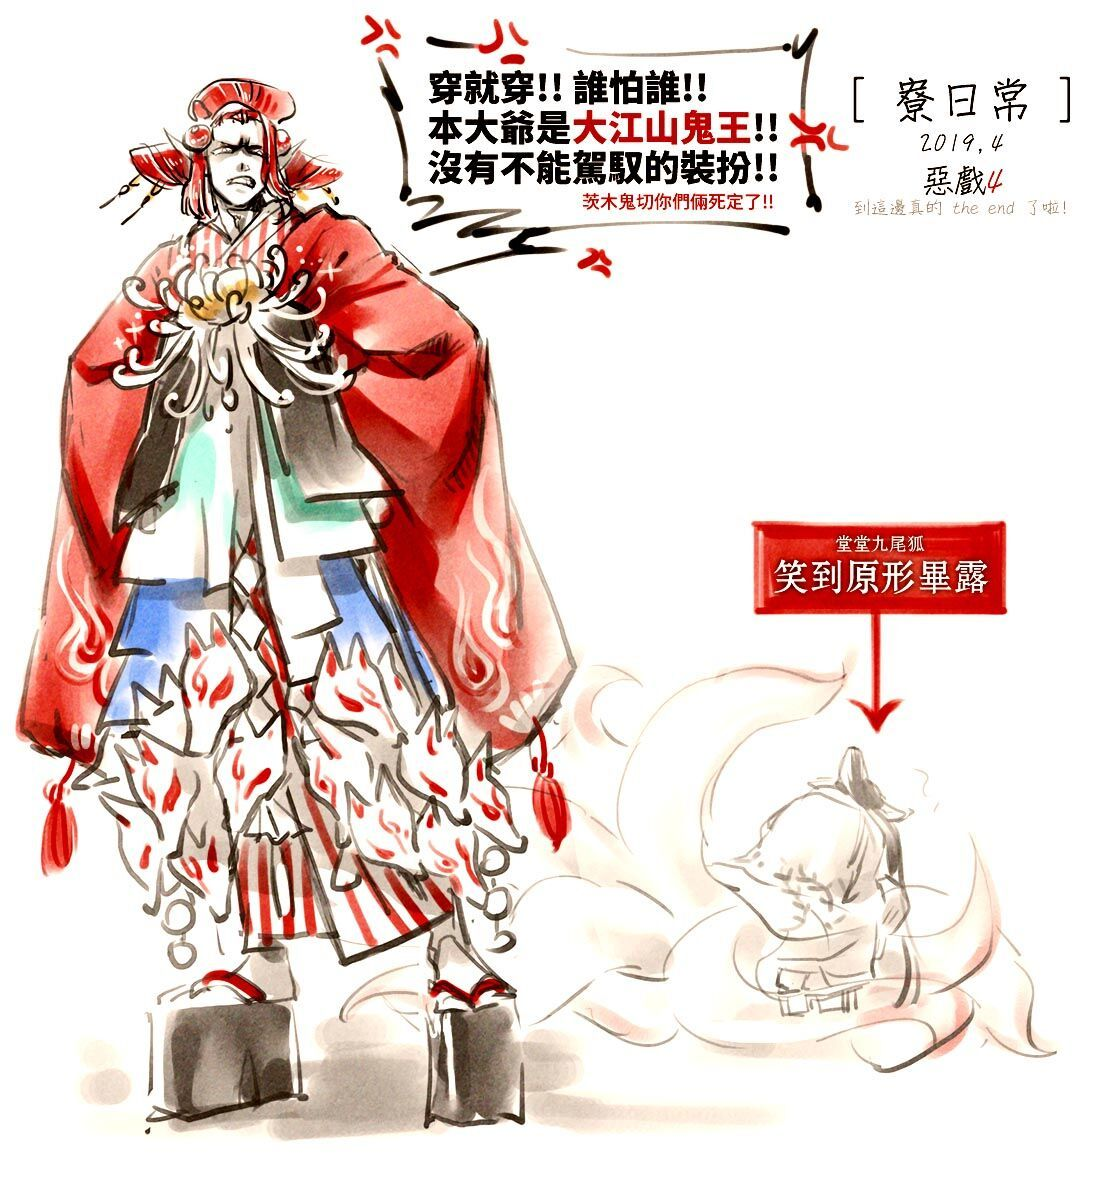 Pin by Evelyn Cheng on 陰陽師 (With images) Anime, Poster